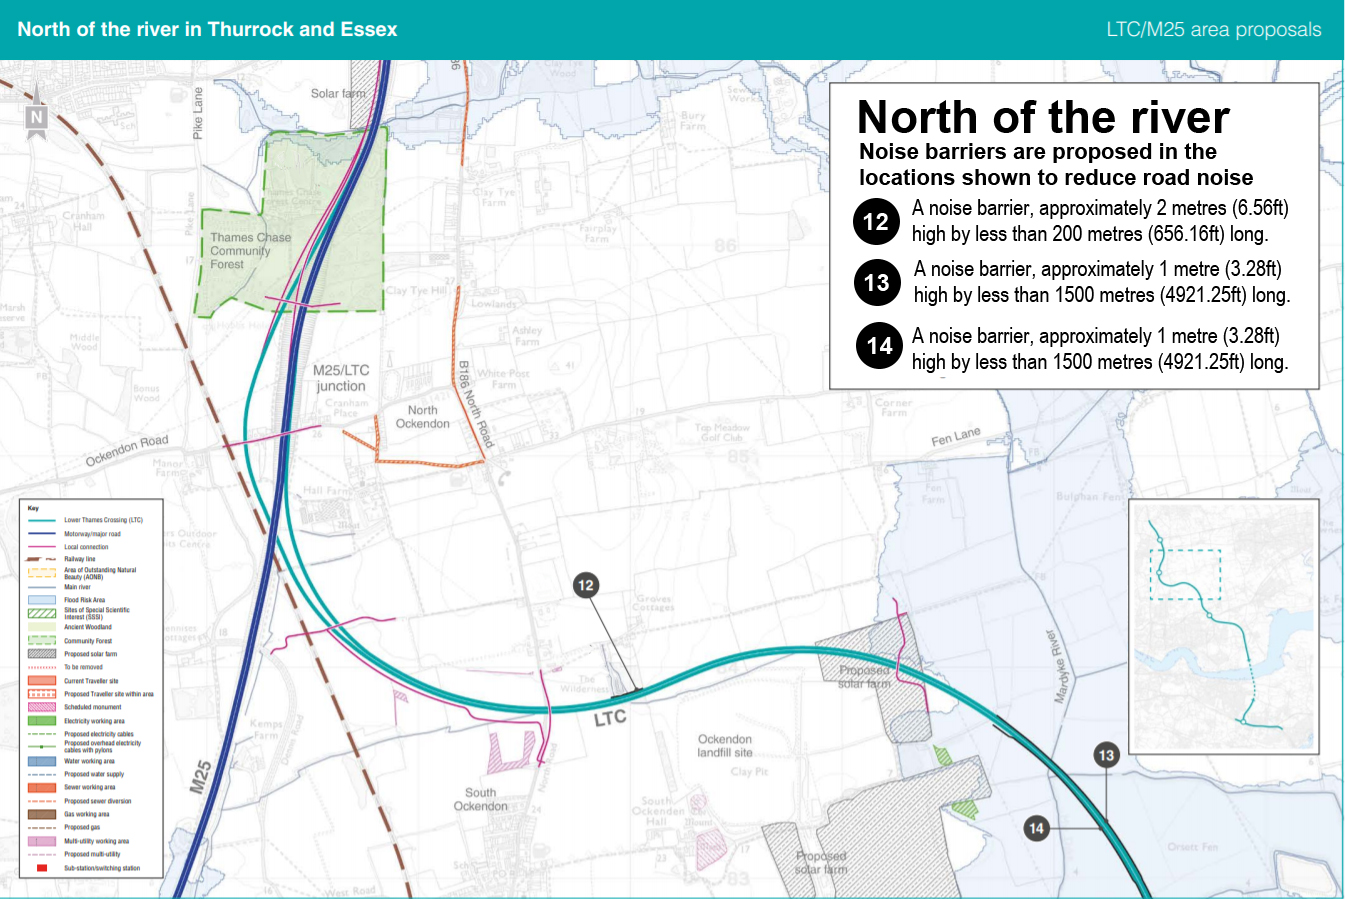 Map showing proposed noise barriers along the route north of the river (Thurrock/Havering/Essex)